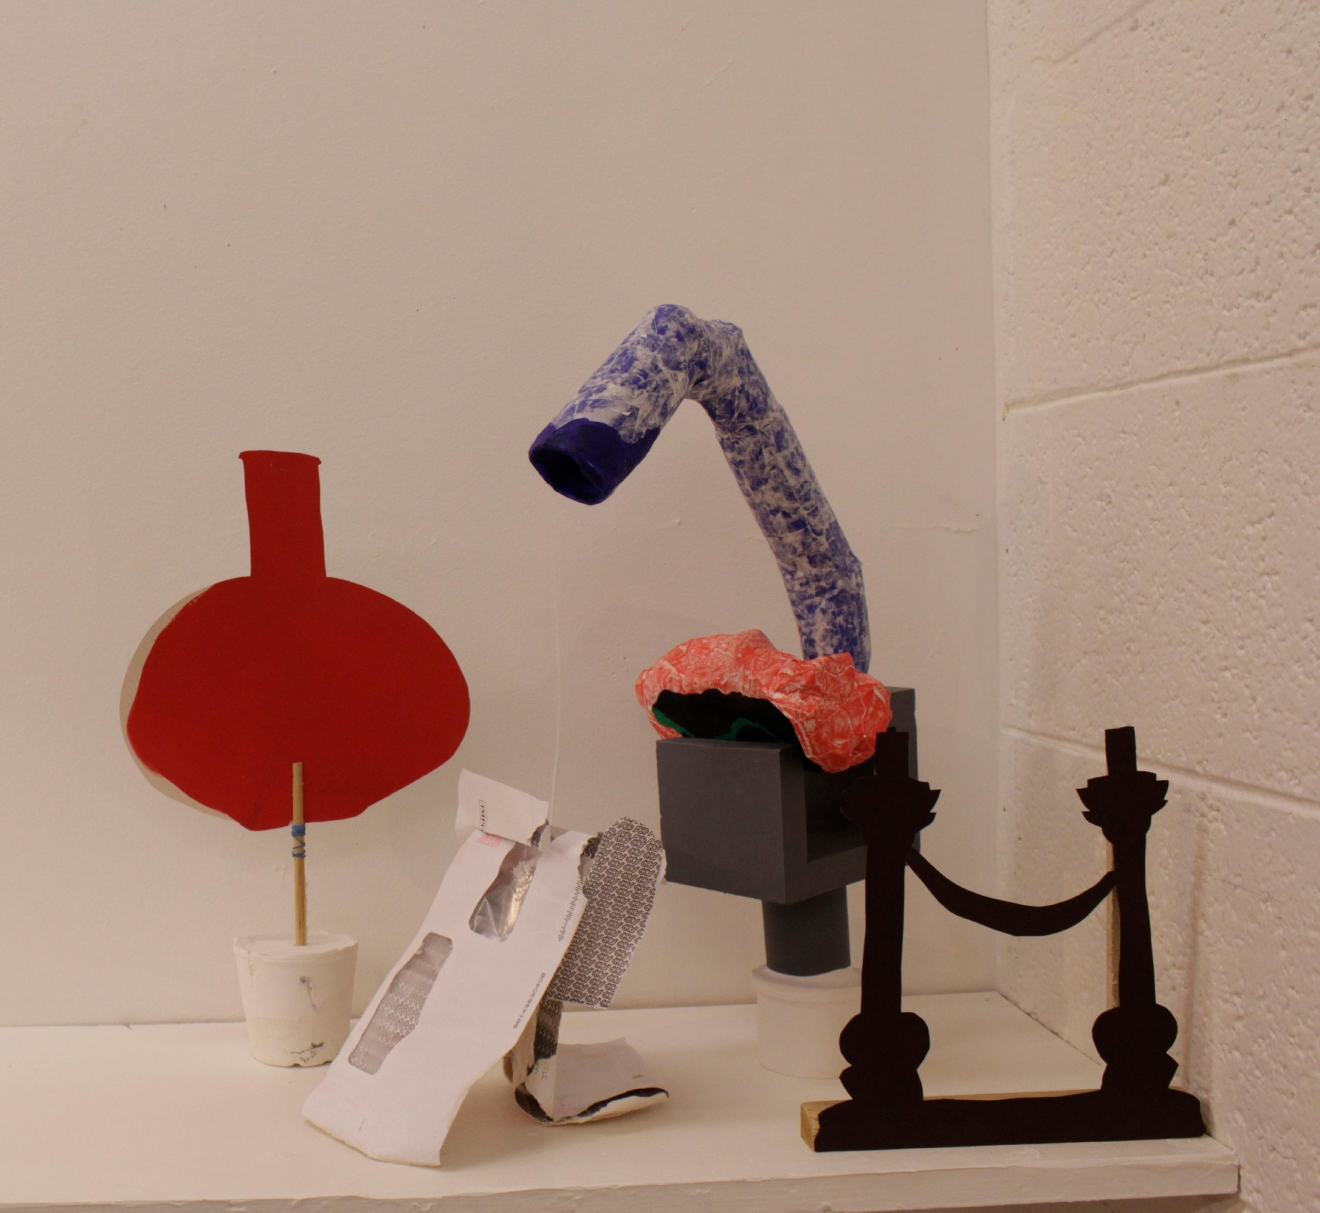 A selections of various relationships on a shelf  a) Red vase (a pinch and a weight) b) The real, real, real thing (two bill envelops)  c) Pieta (gray, blue, red and flocking)  d) Smile? Hang on? (black bookends) Mixed media 2014-2016  Photo courtesy Dawn Cerny